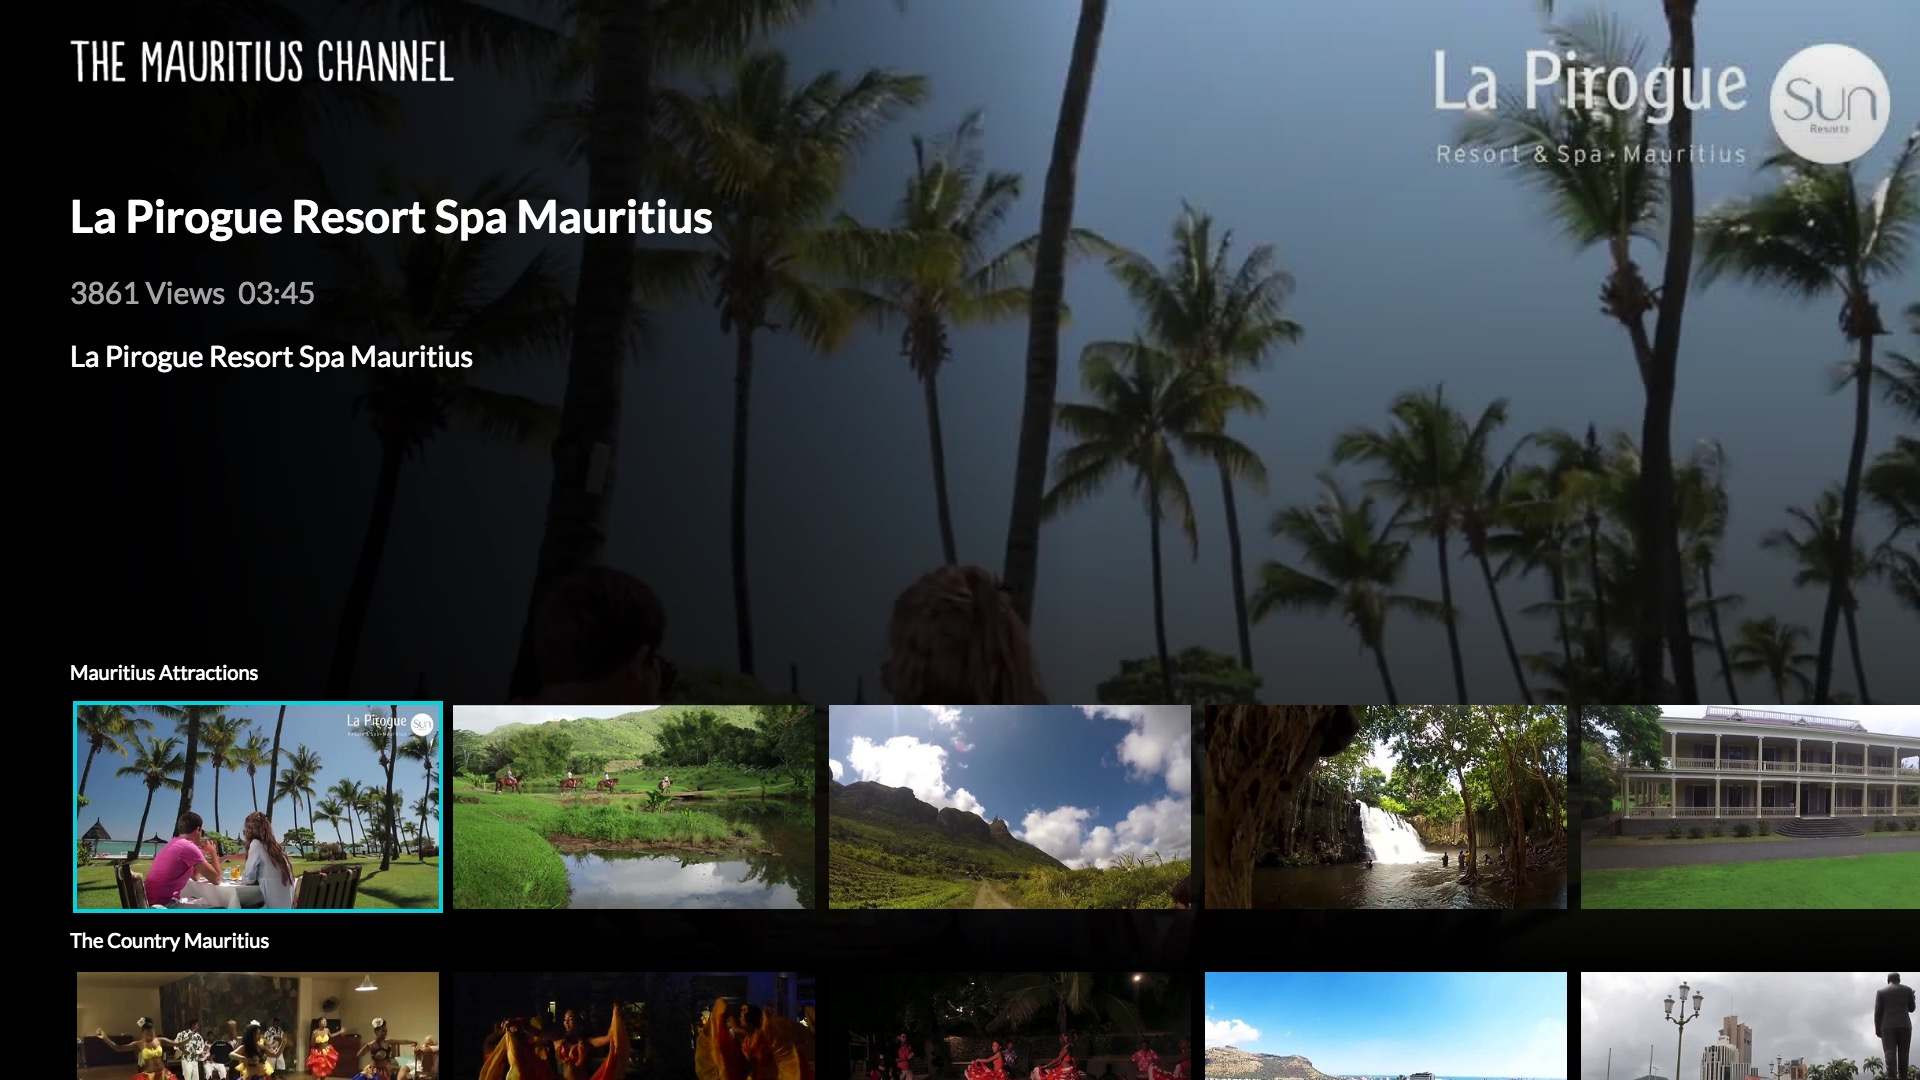 The Mauritius Channel Screenshot 002